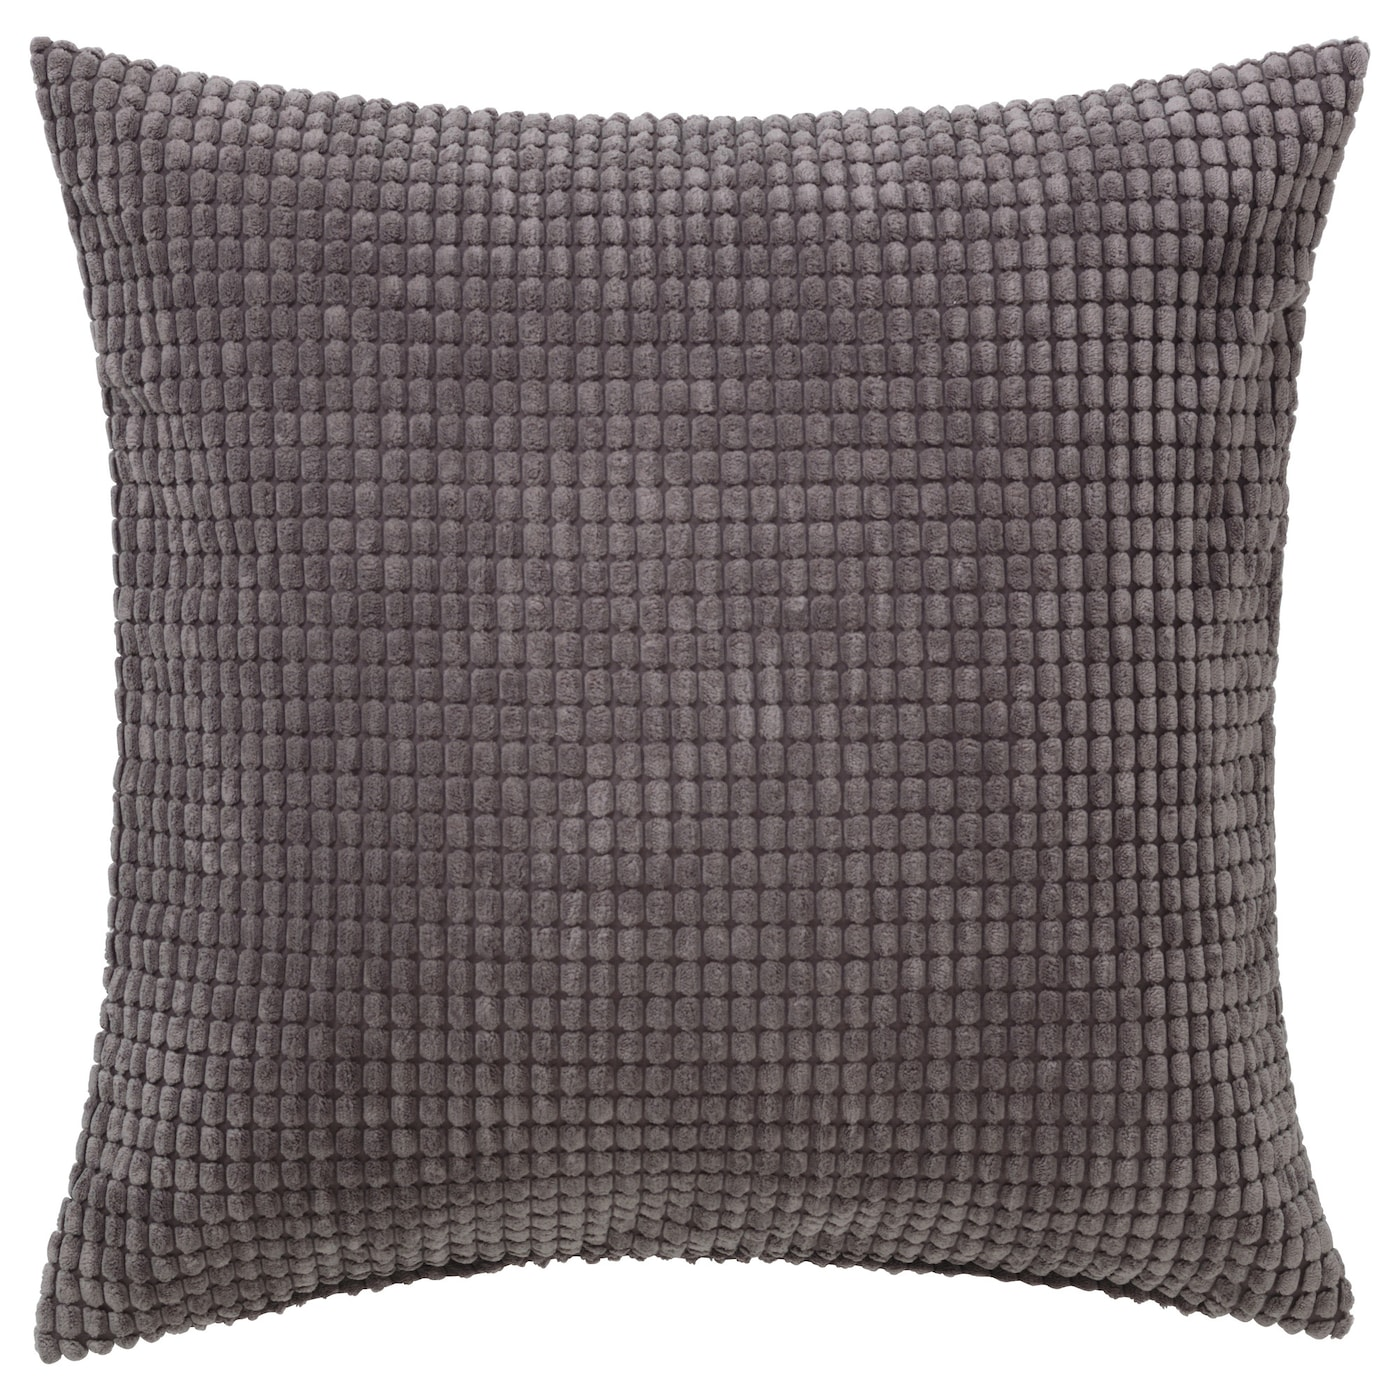 GULLKLOCKA Cushion cover Grey 50x50 cm IKEA